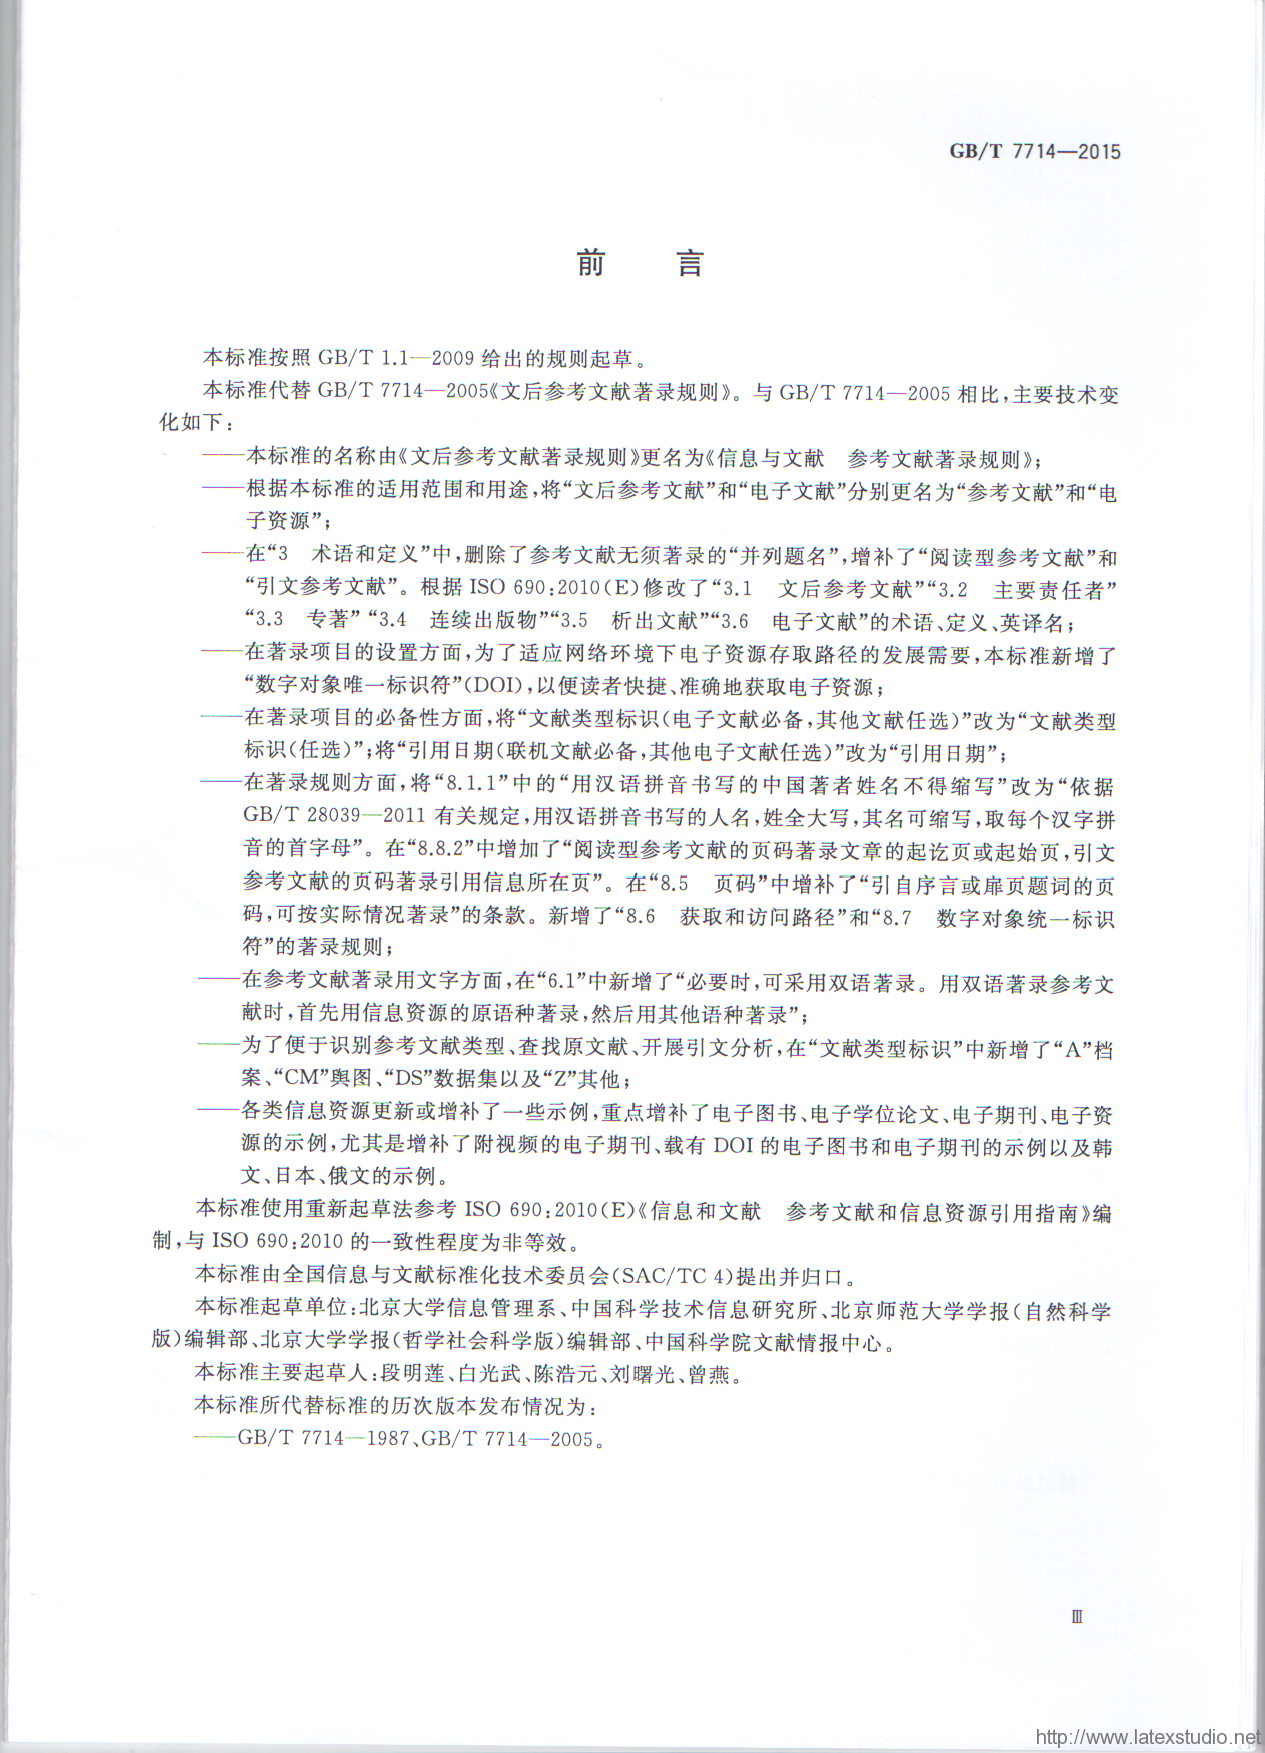 GB7714-2015reference_page_04